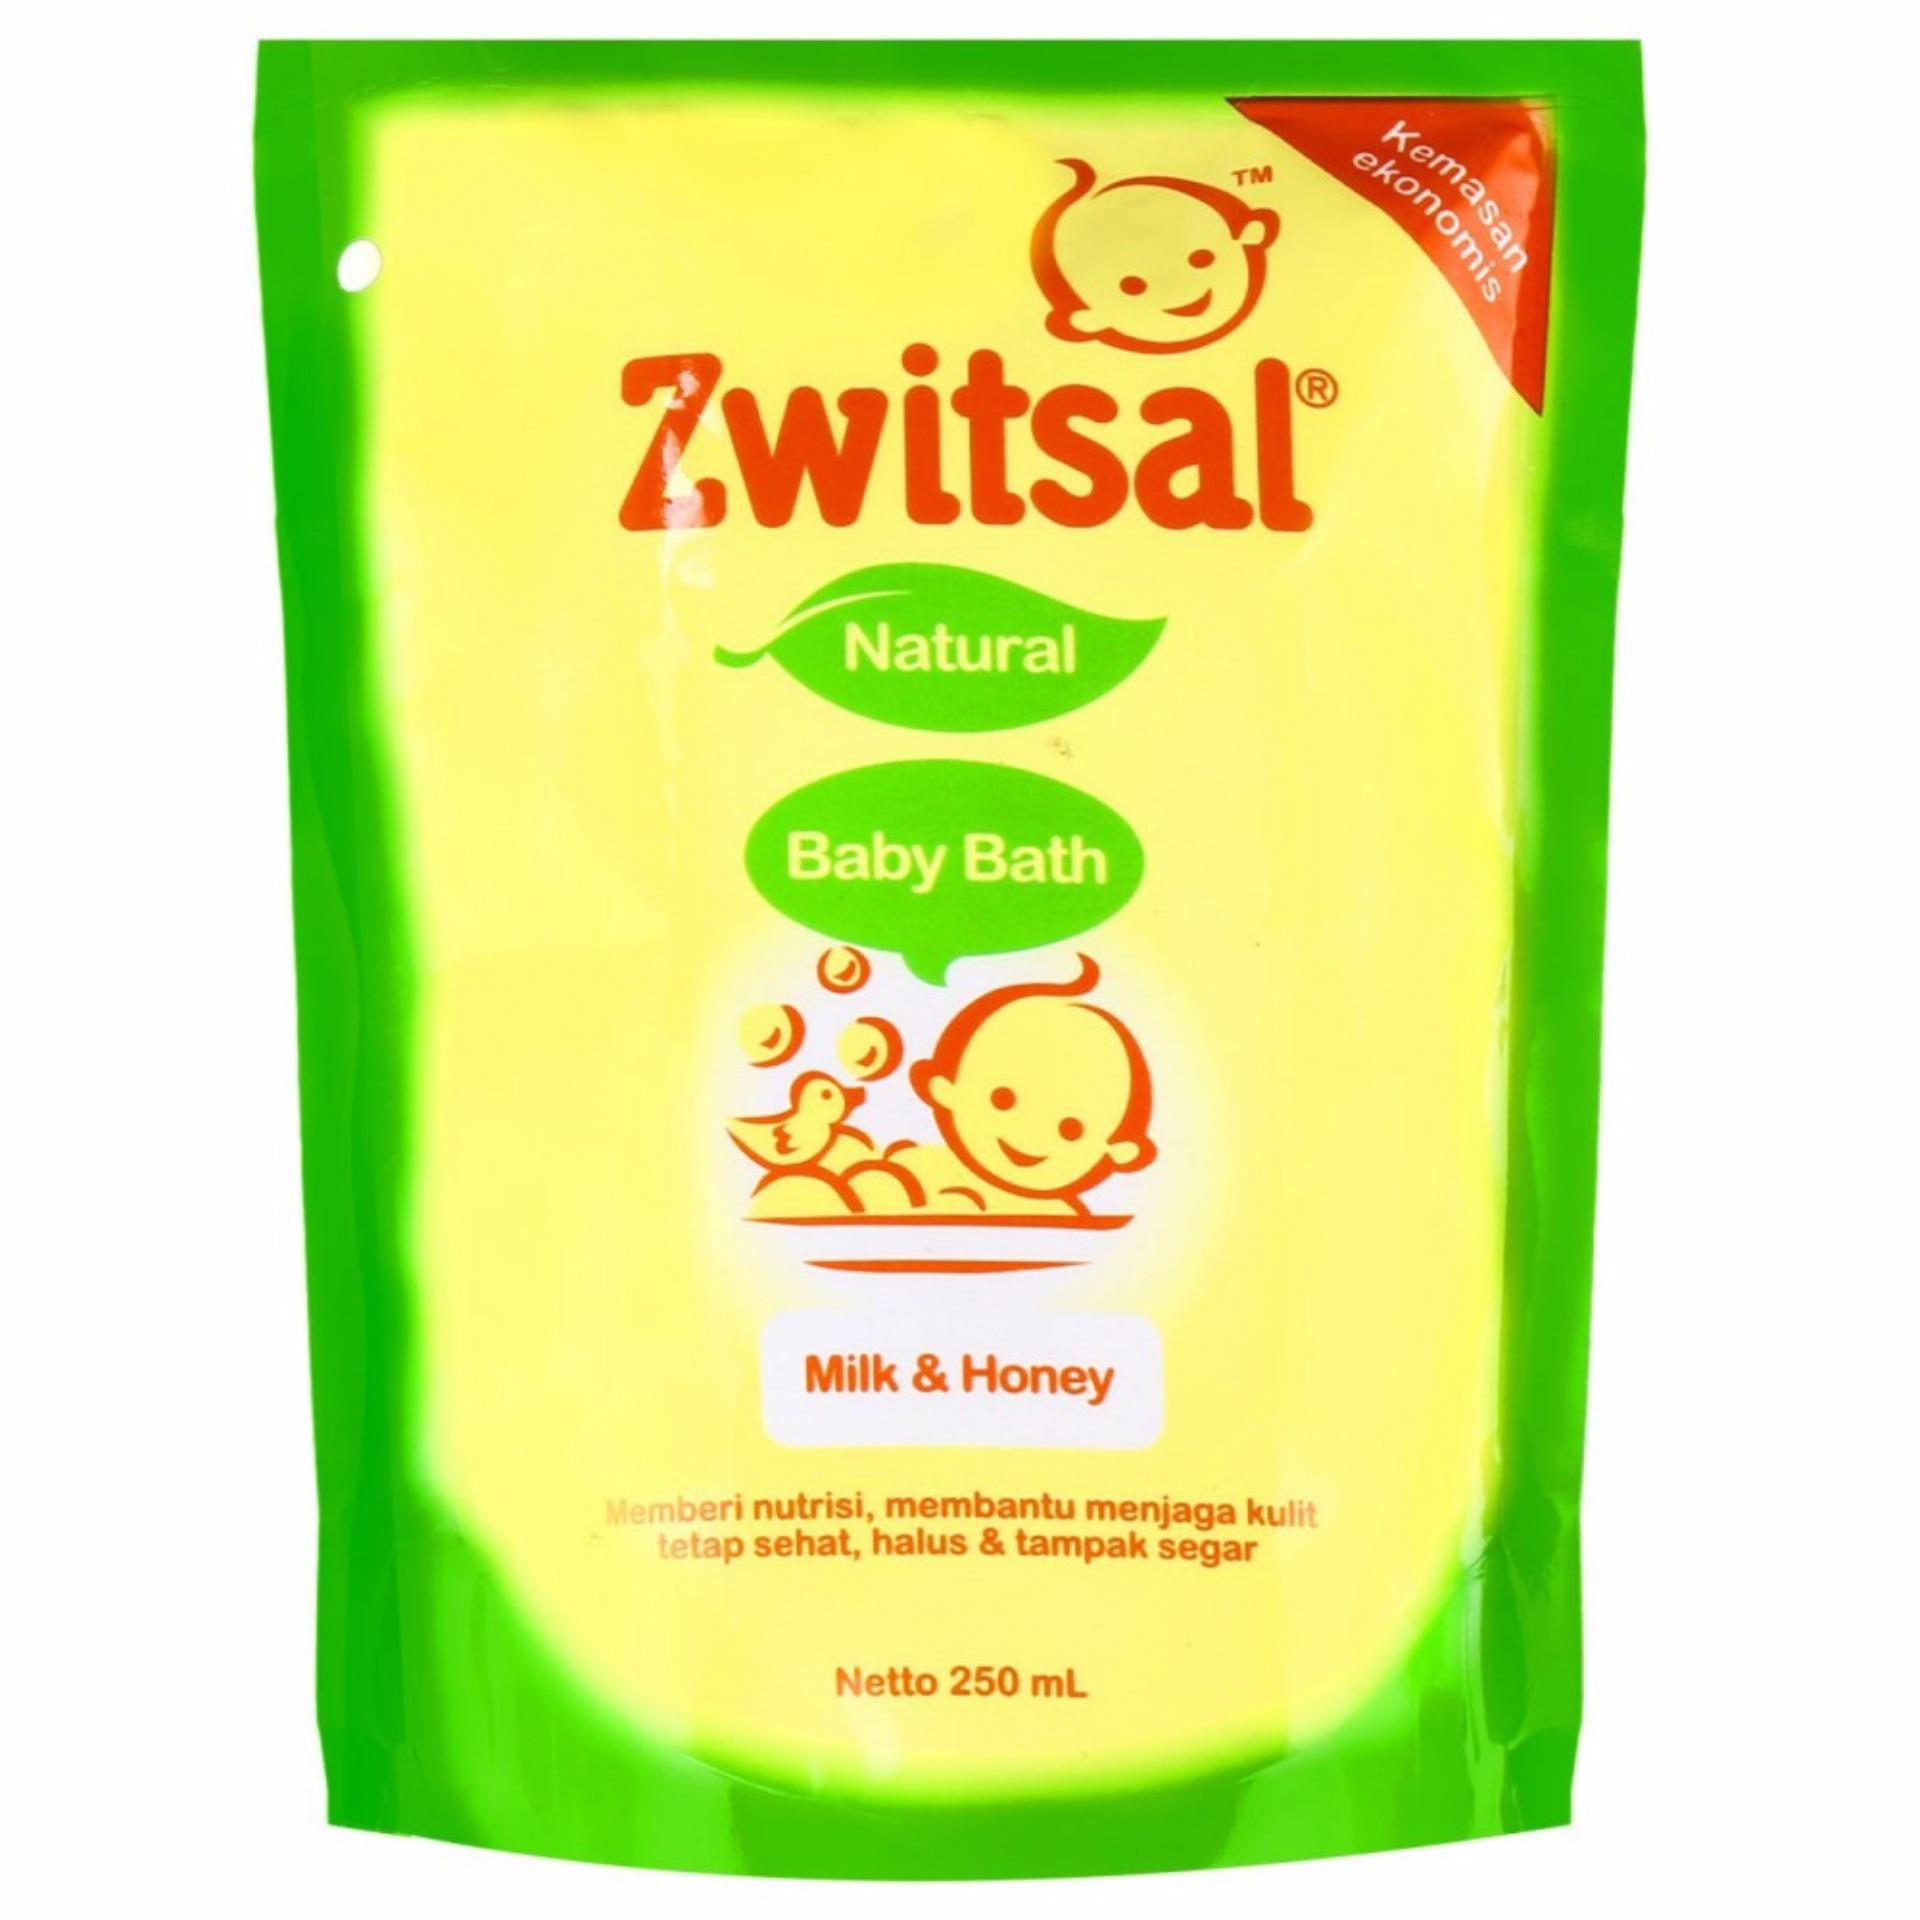 Zwitsal Baby Bath Natural Milk & Honey Refill 250 ml